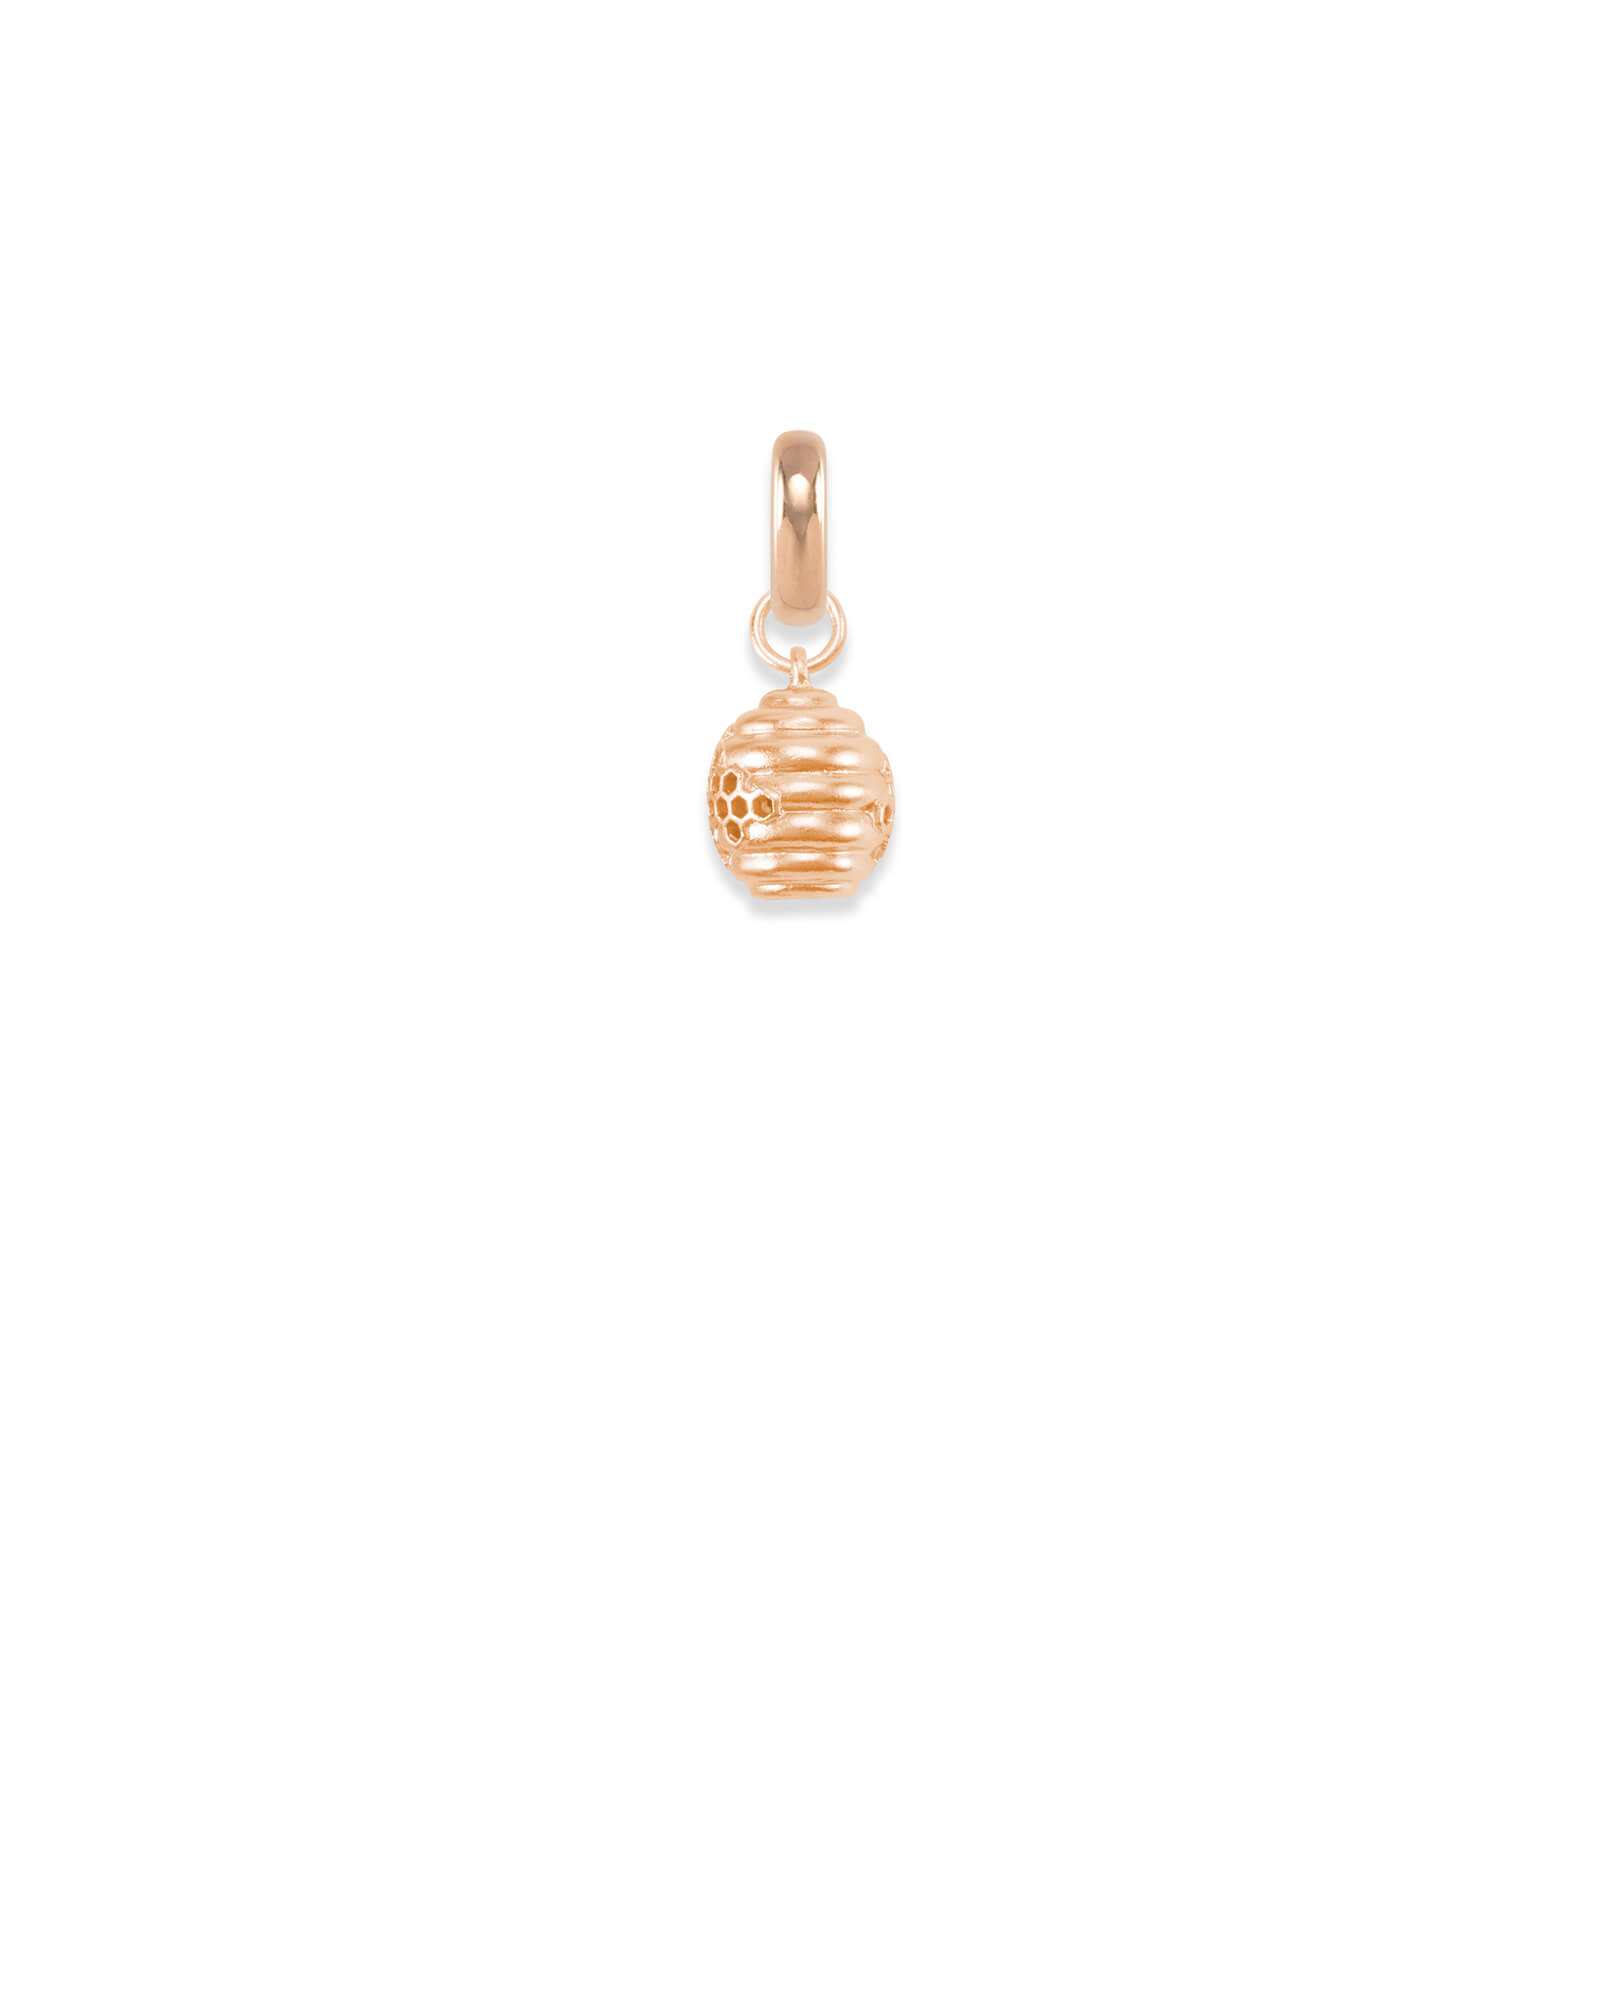 Utah Beehive Charm in Rose Gold